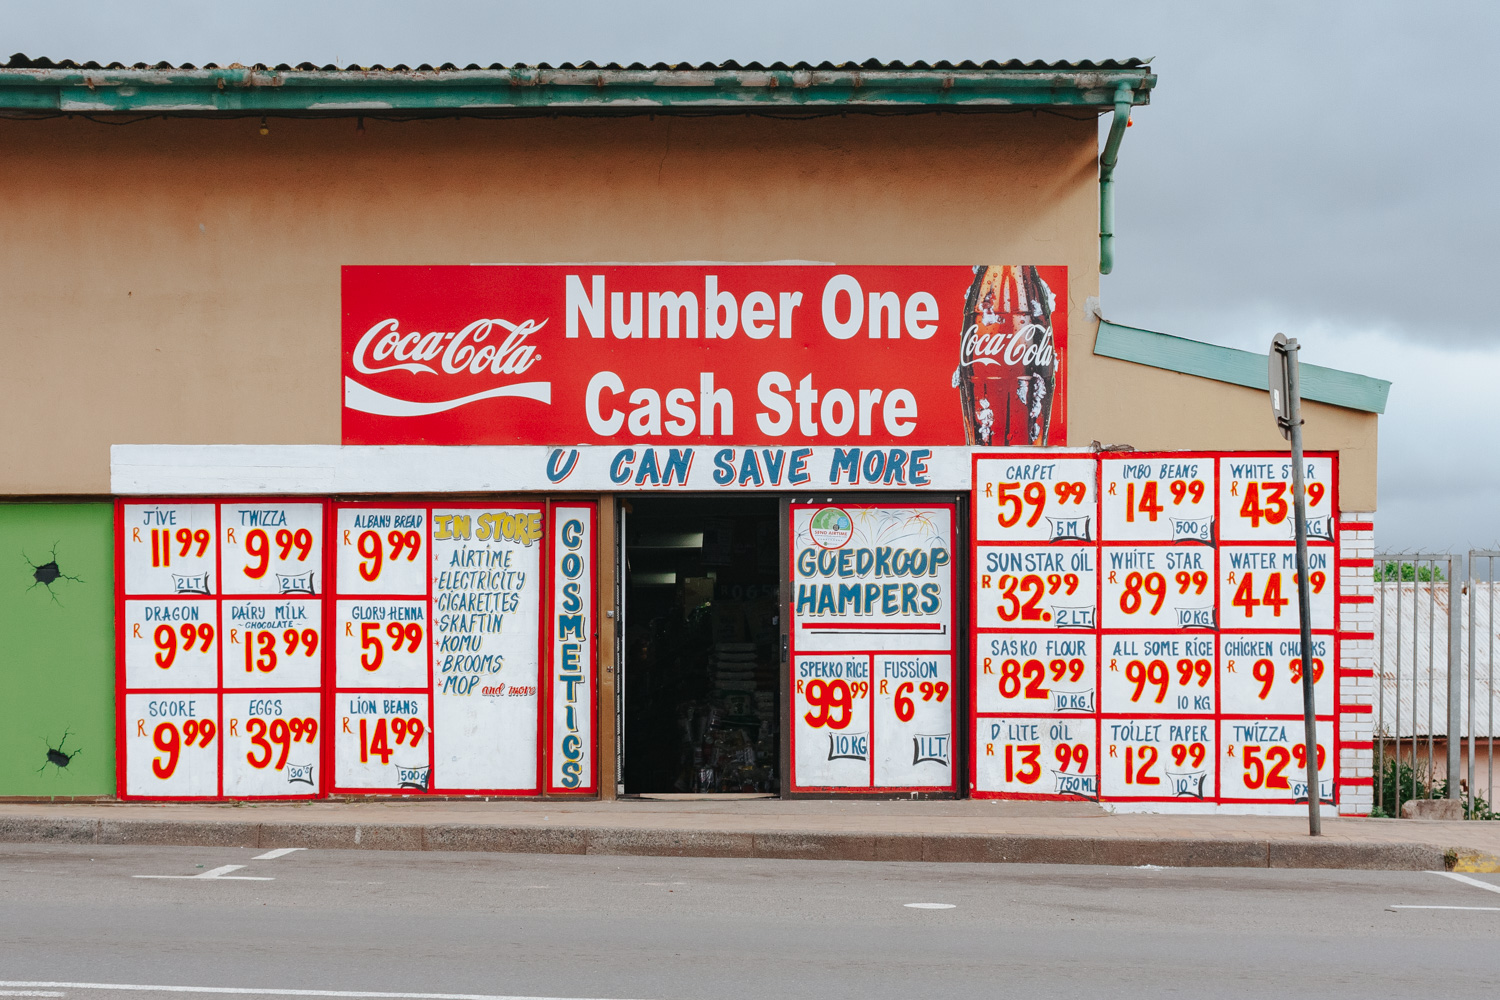 Number one cash store